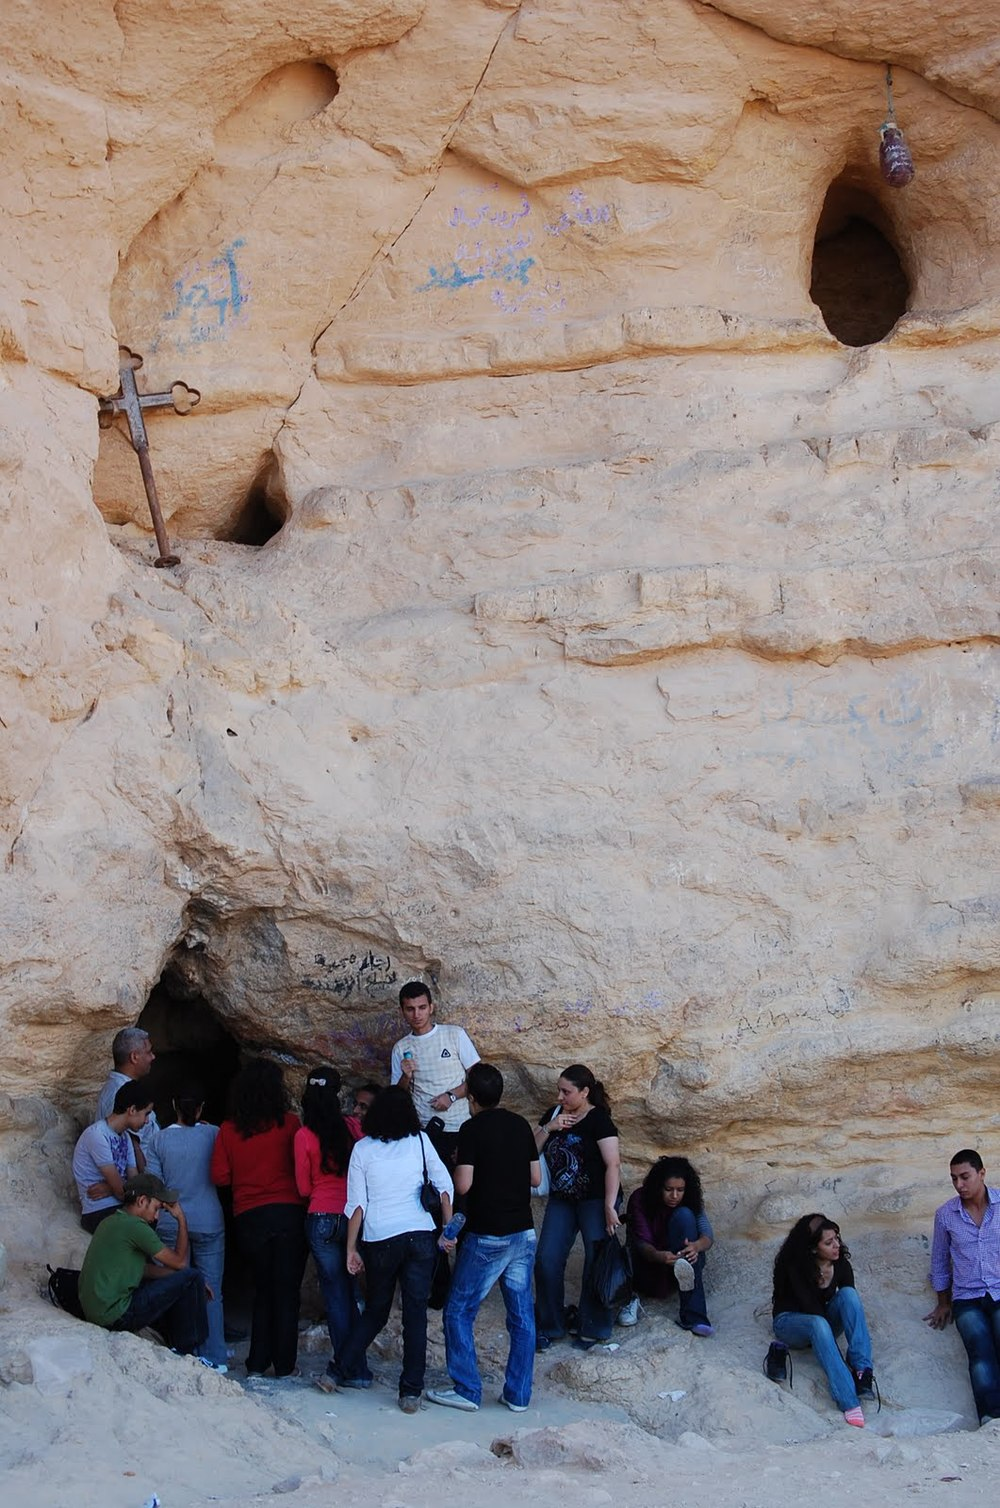 St. Antony's cave with pilgrims at the entrance. (Photo by author)